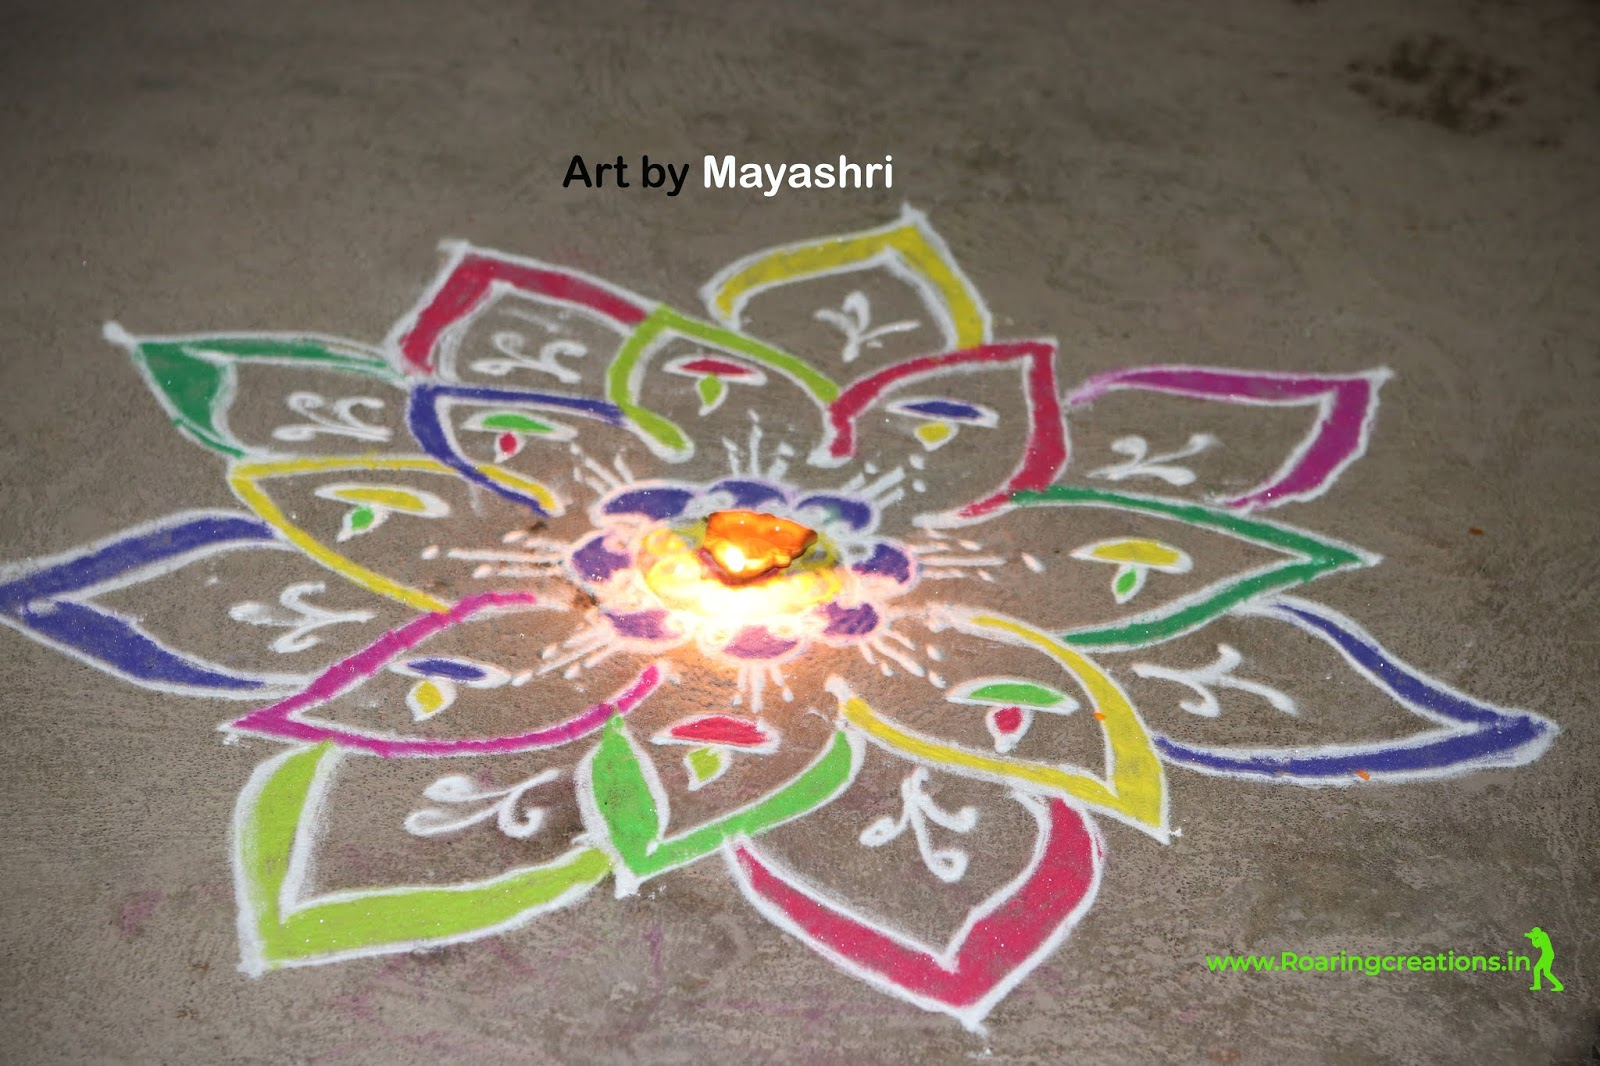 Rangoli Drawing Art Images, rangoli, rangoli images, rangoli designs, rangoli designs images, simple rangoli, simple rangoli designs, rangoli design for diwali, diwali rangoli, rangoli photo, easy rangoli design, new rangoli designs, simple rangoli designs images, rangoli designs with dots, best rangoli design, free hand rangoli, diwali rangoli images, rangoli design images new and simple, diwali special rangoli, ganpati rangoli, rangoli drawing, flower rangoli design, home rangoli, New year rangoli,